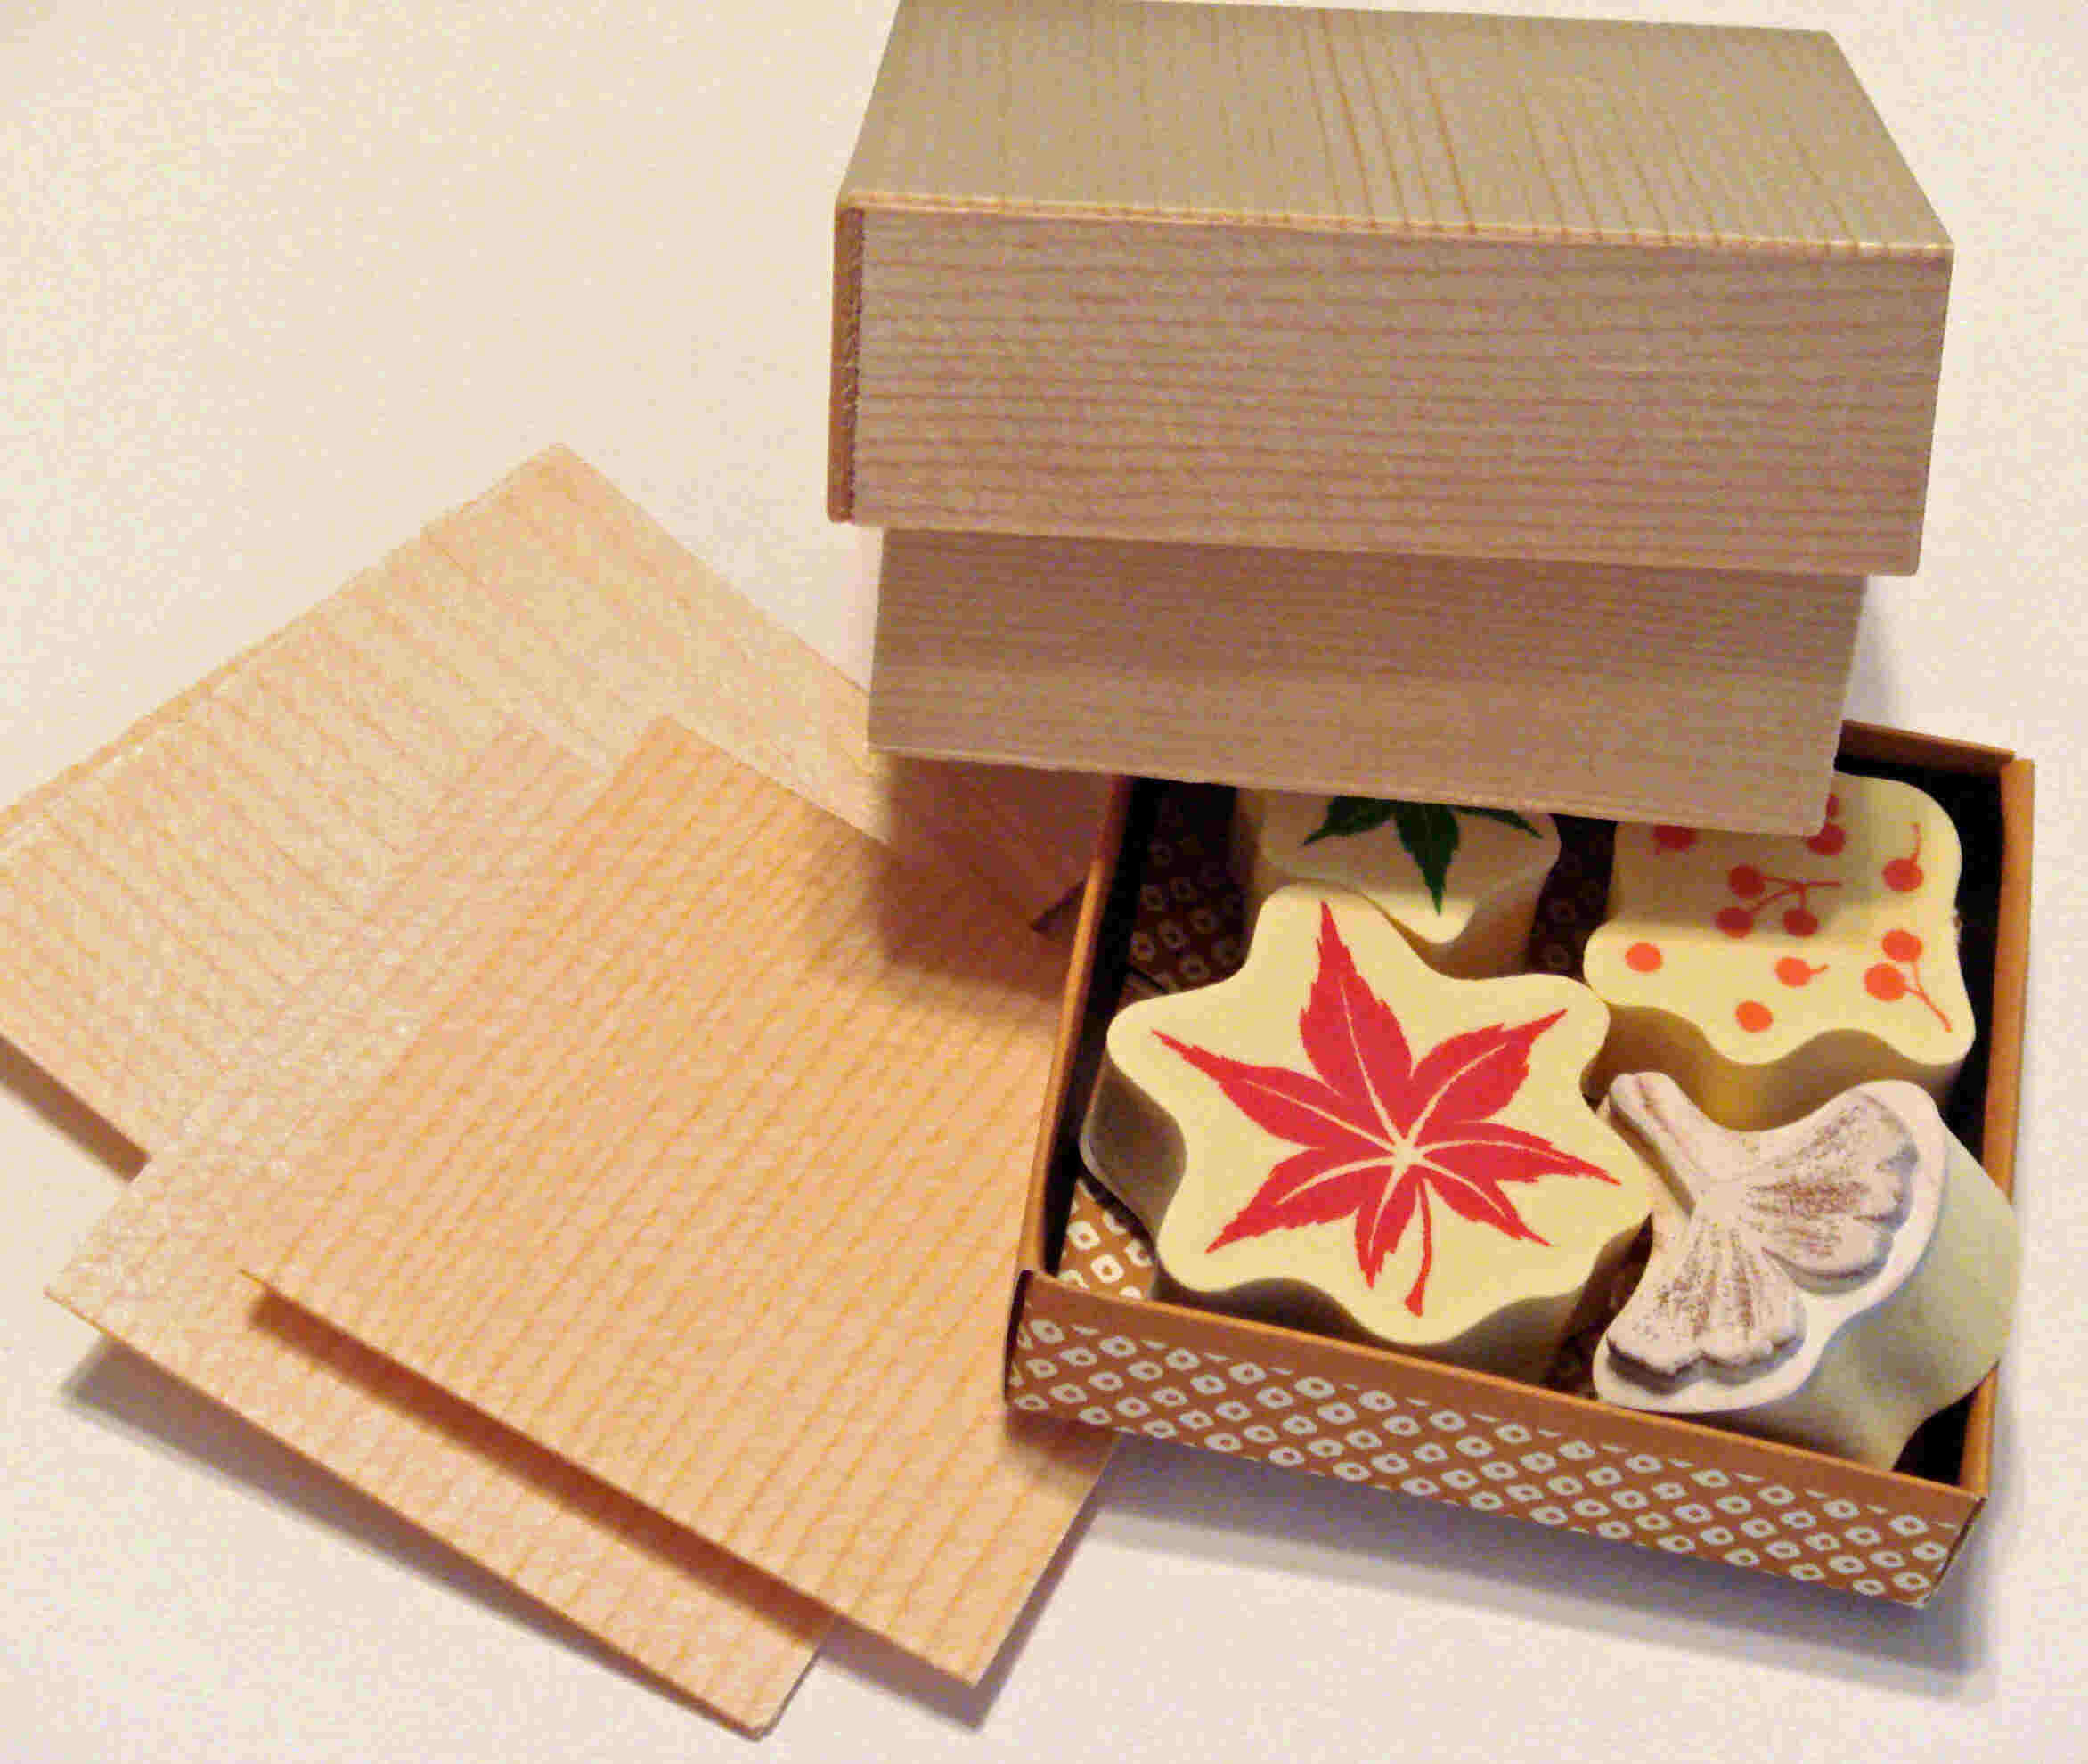 Here is one look at the Edo Ori Bako set along with the wood tiles. The stamps are die-cut foam.